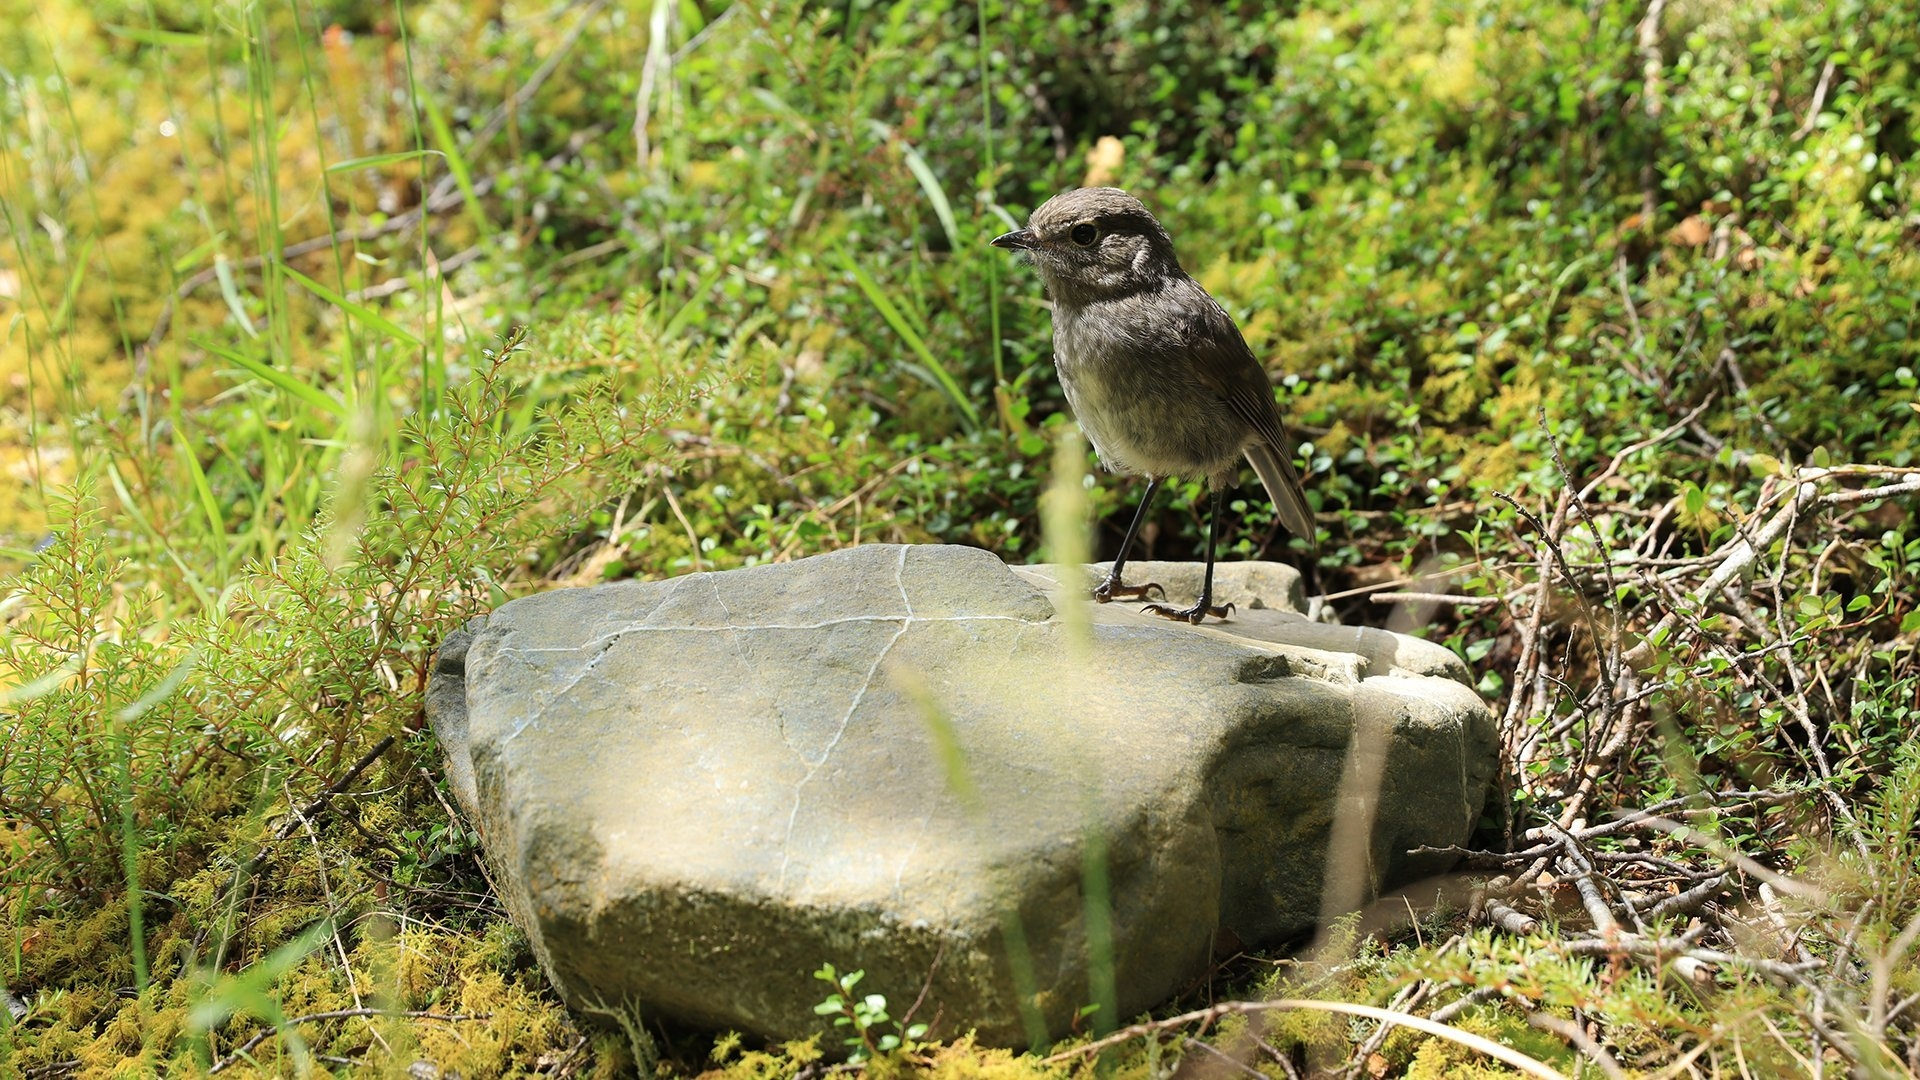 Image of a bird stood on a rock and taken with the Canon EOS 850D